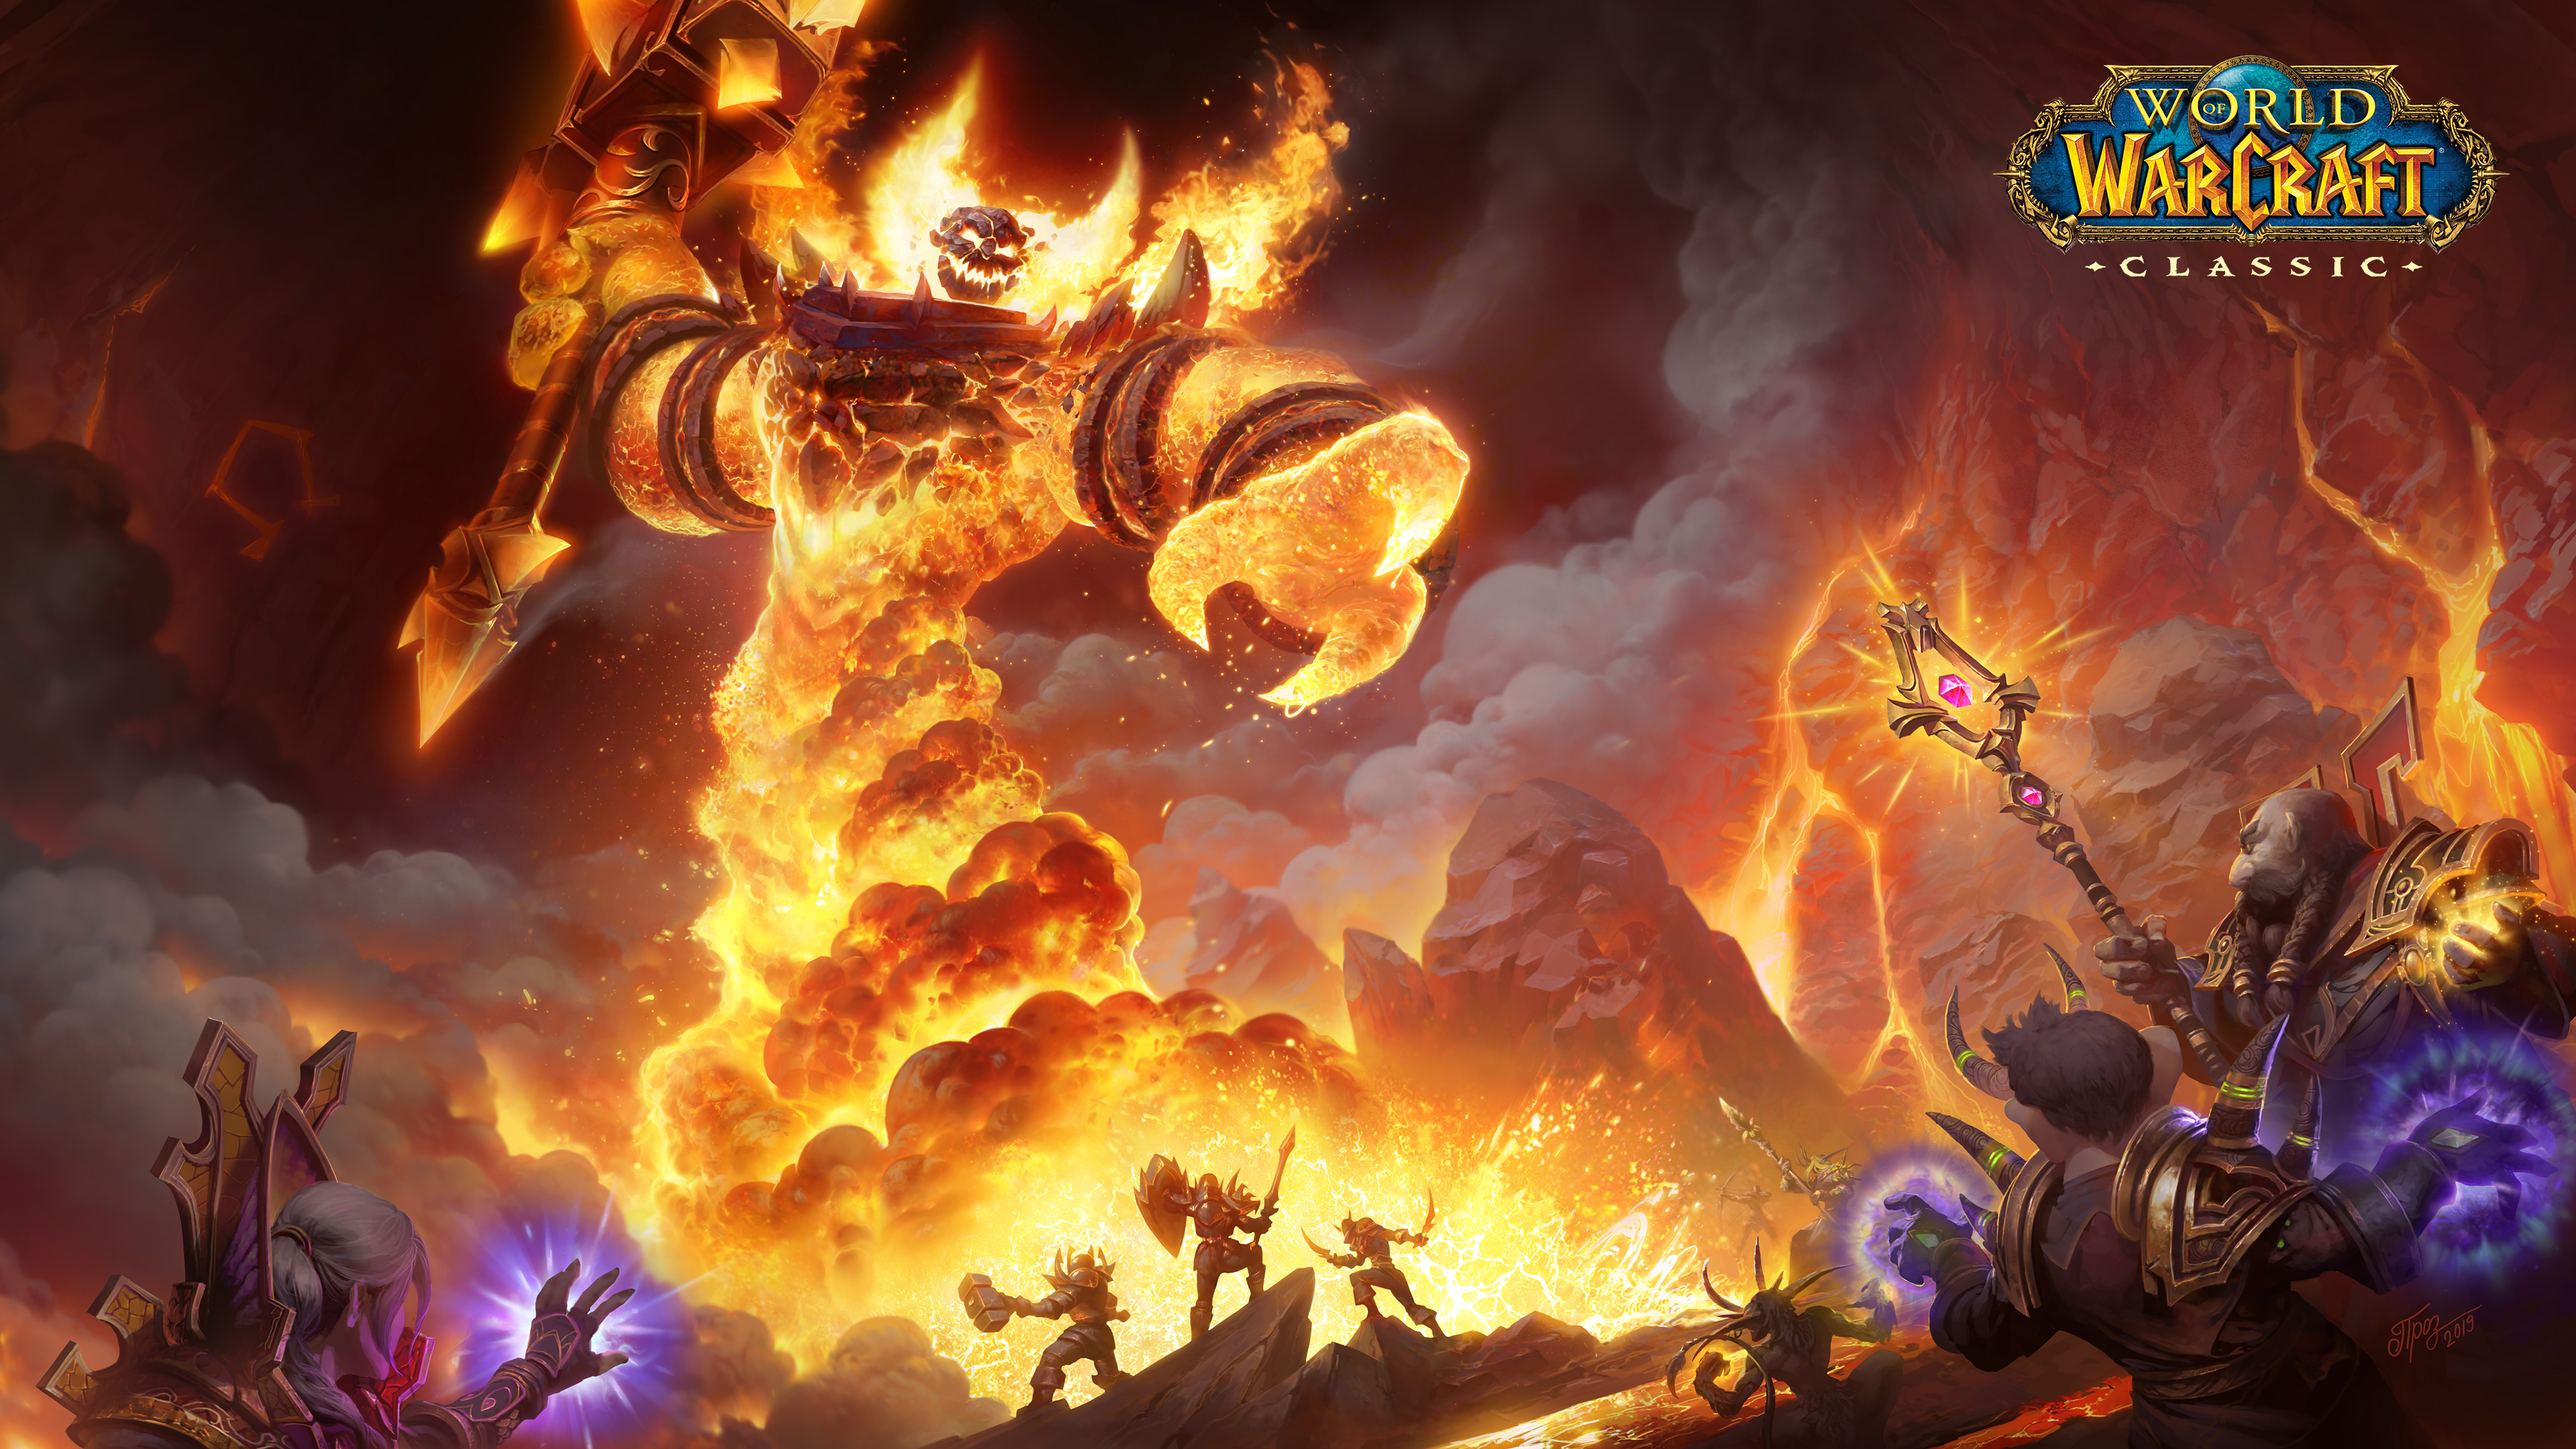 Blizzard Press Center - World of Warcraft: Classic and 15th